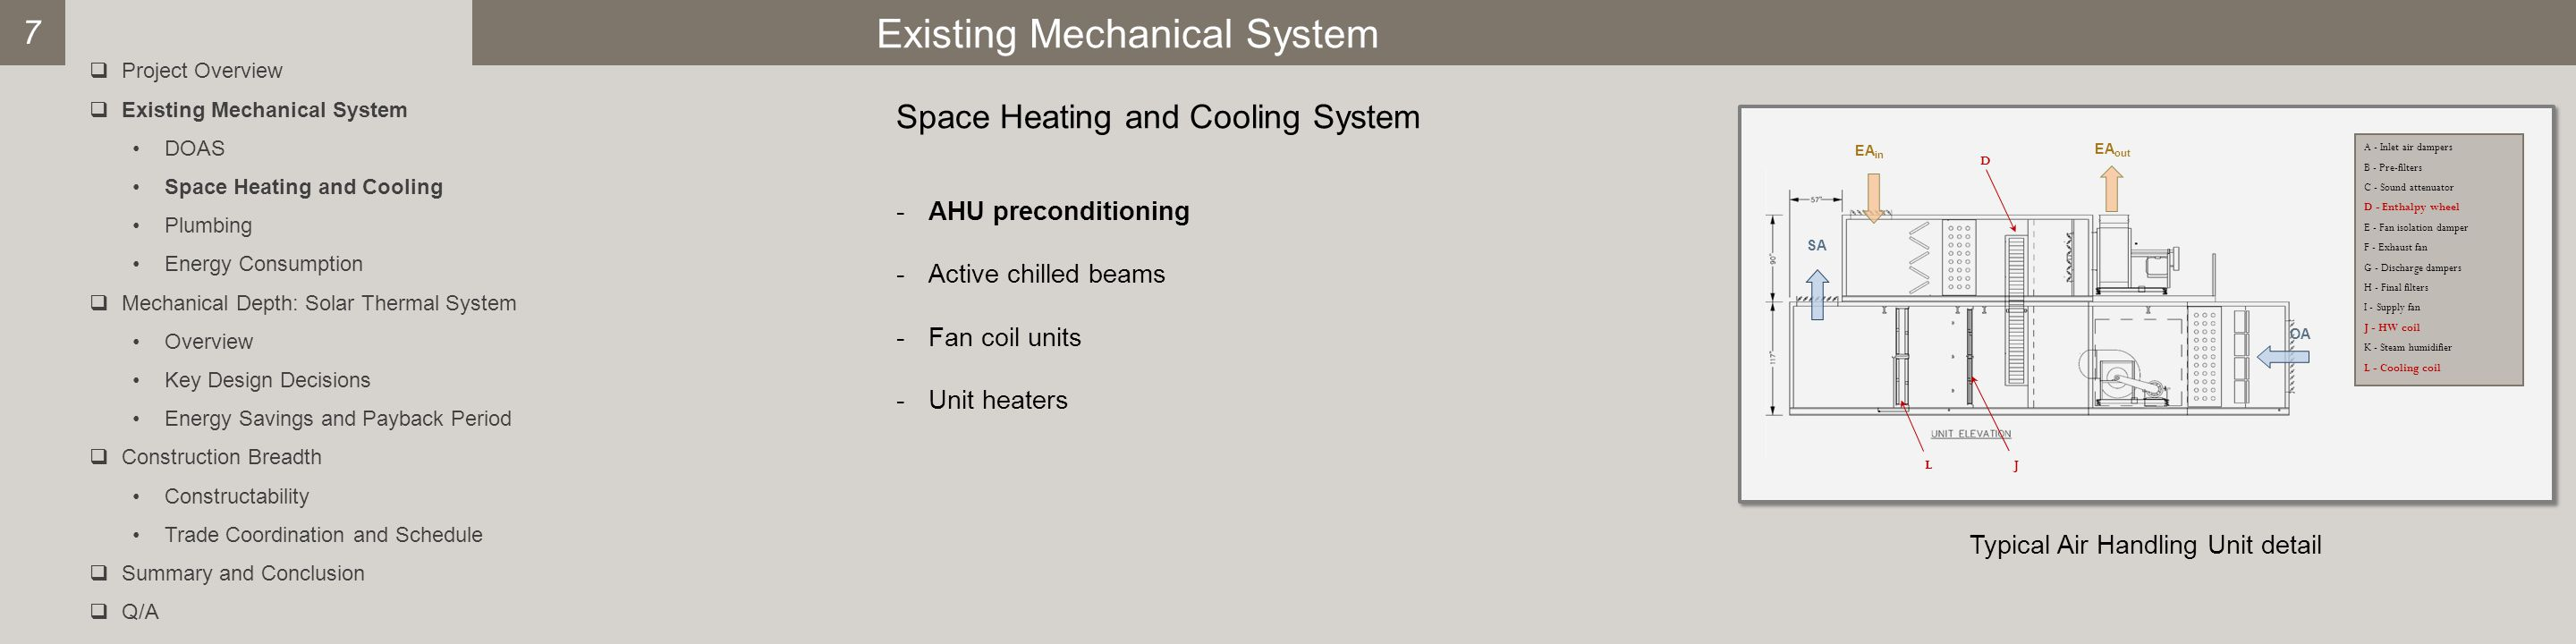 Existing Mechanical System Space Heating and Cooling System -AHU preconditioning -Active chilled beams -Fan coil units -Unit heaters Typical Air Handling Unit detail 7  Project Overview  Existing Mechanical System DOAS Space Heating and Cooling Plumbing Energy Consumption  Mechanical Depth: Solar Thermal System Overview Key Design Decisions Energy Savings and Payback Period  Construction Breadth Constructability Trade Coordination and Schedule  Summary and Conclusion  Q/A